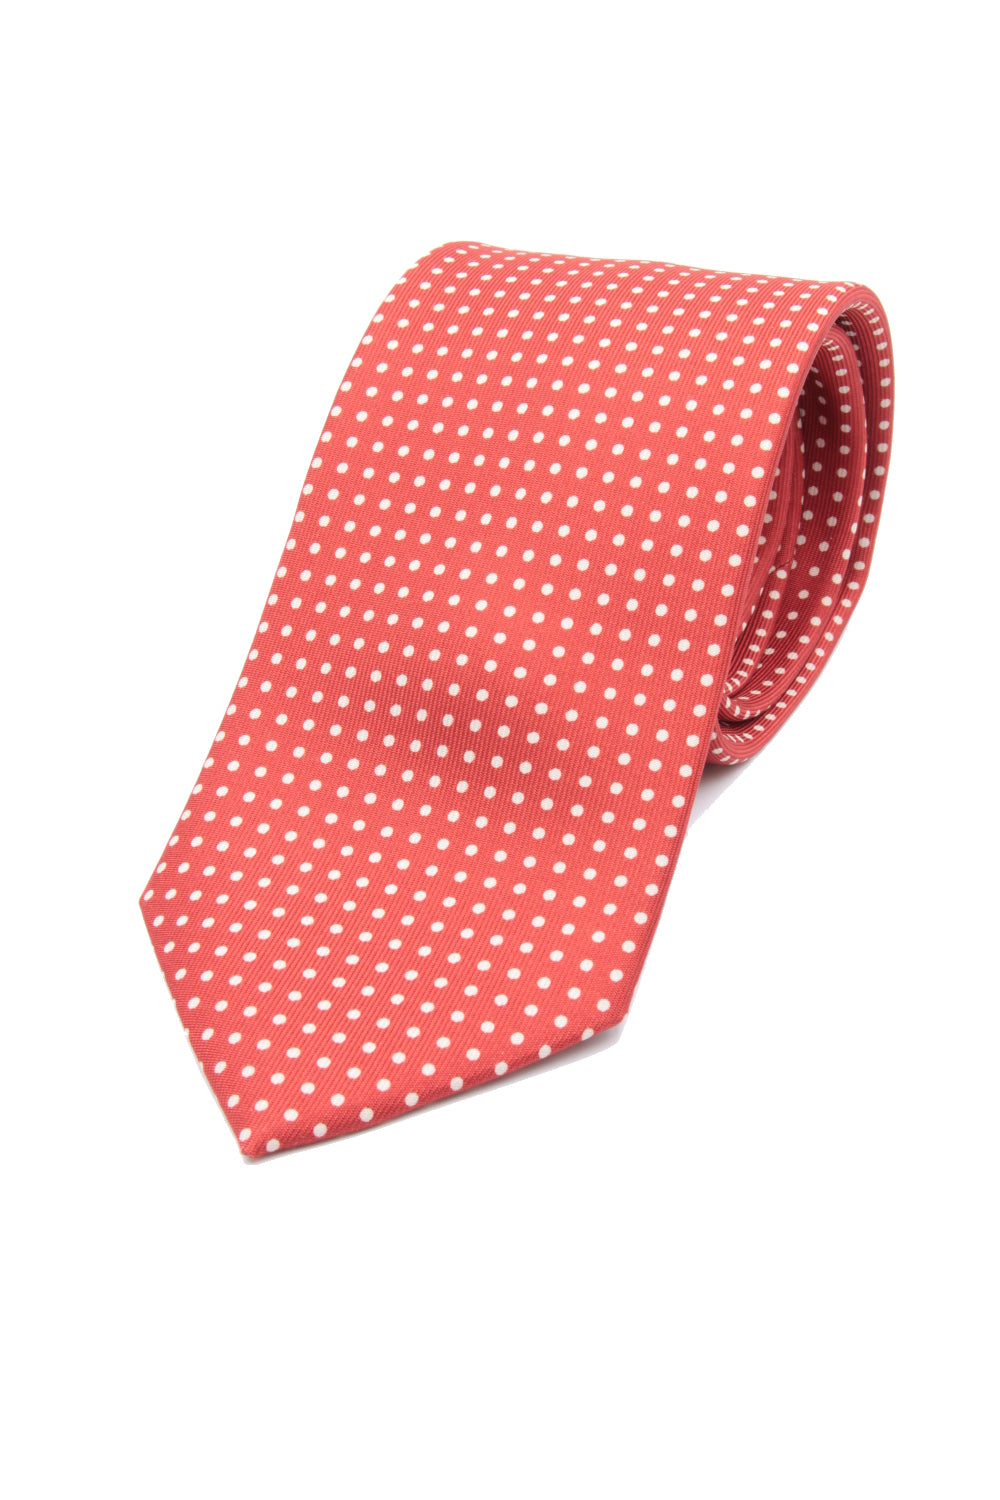 drake's Light red and white dot tie